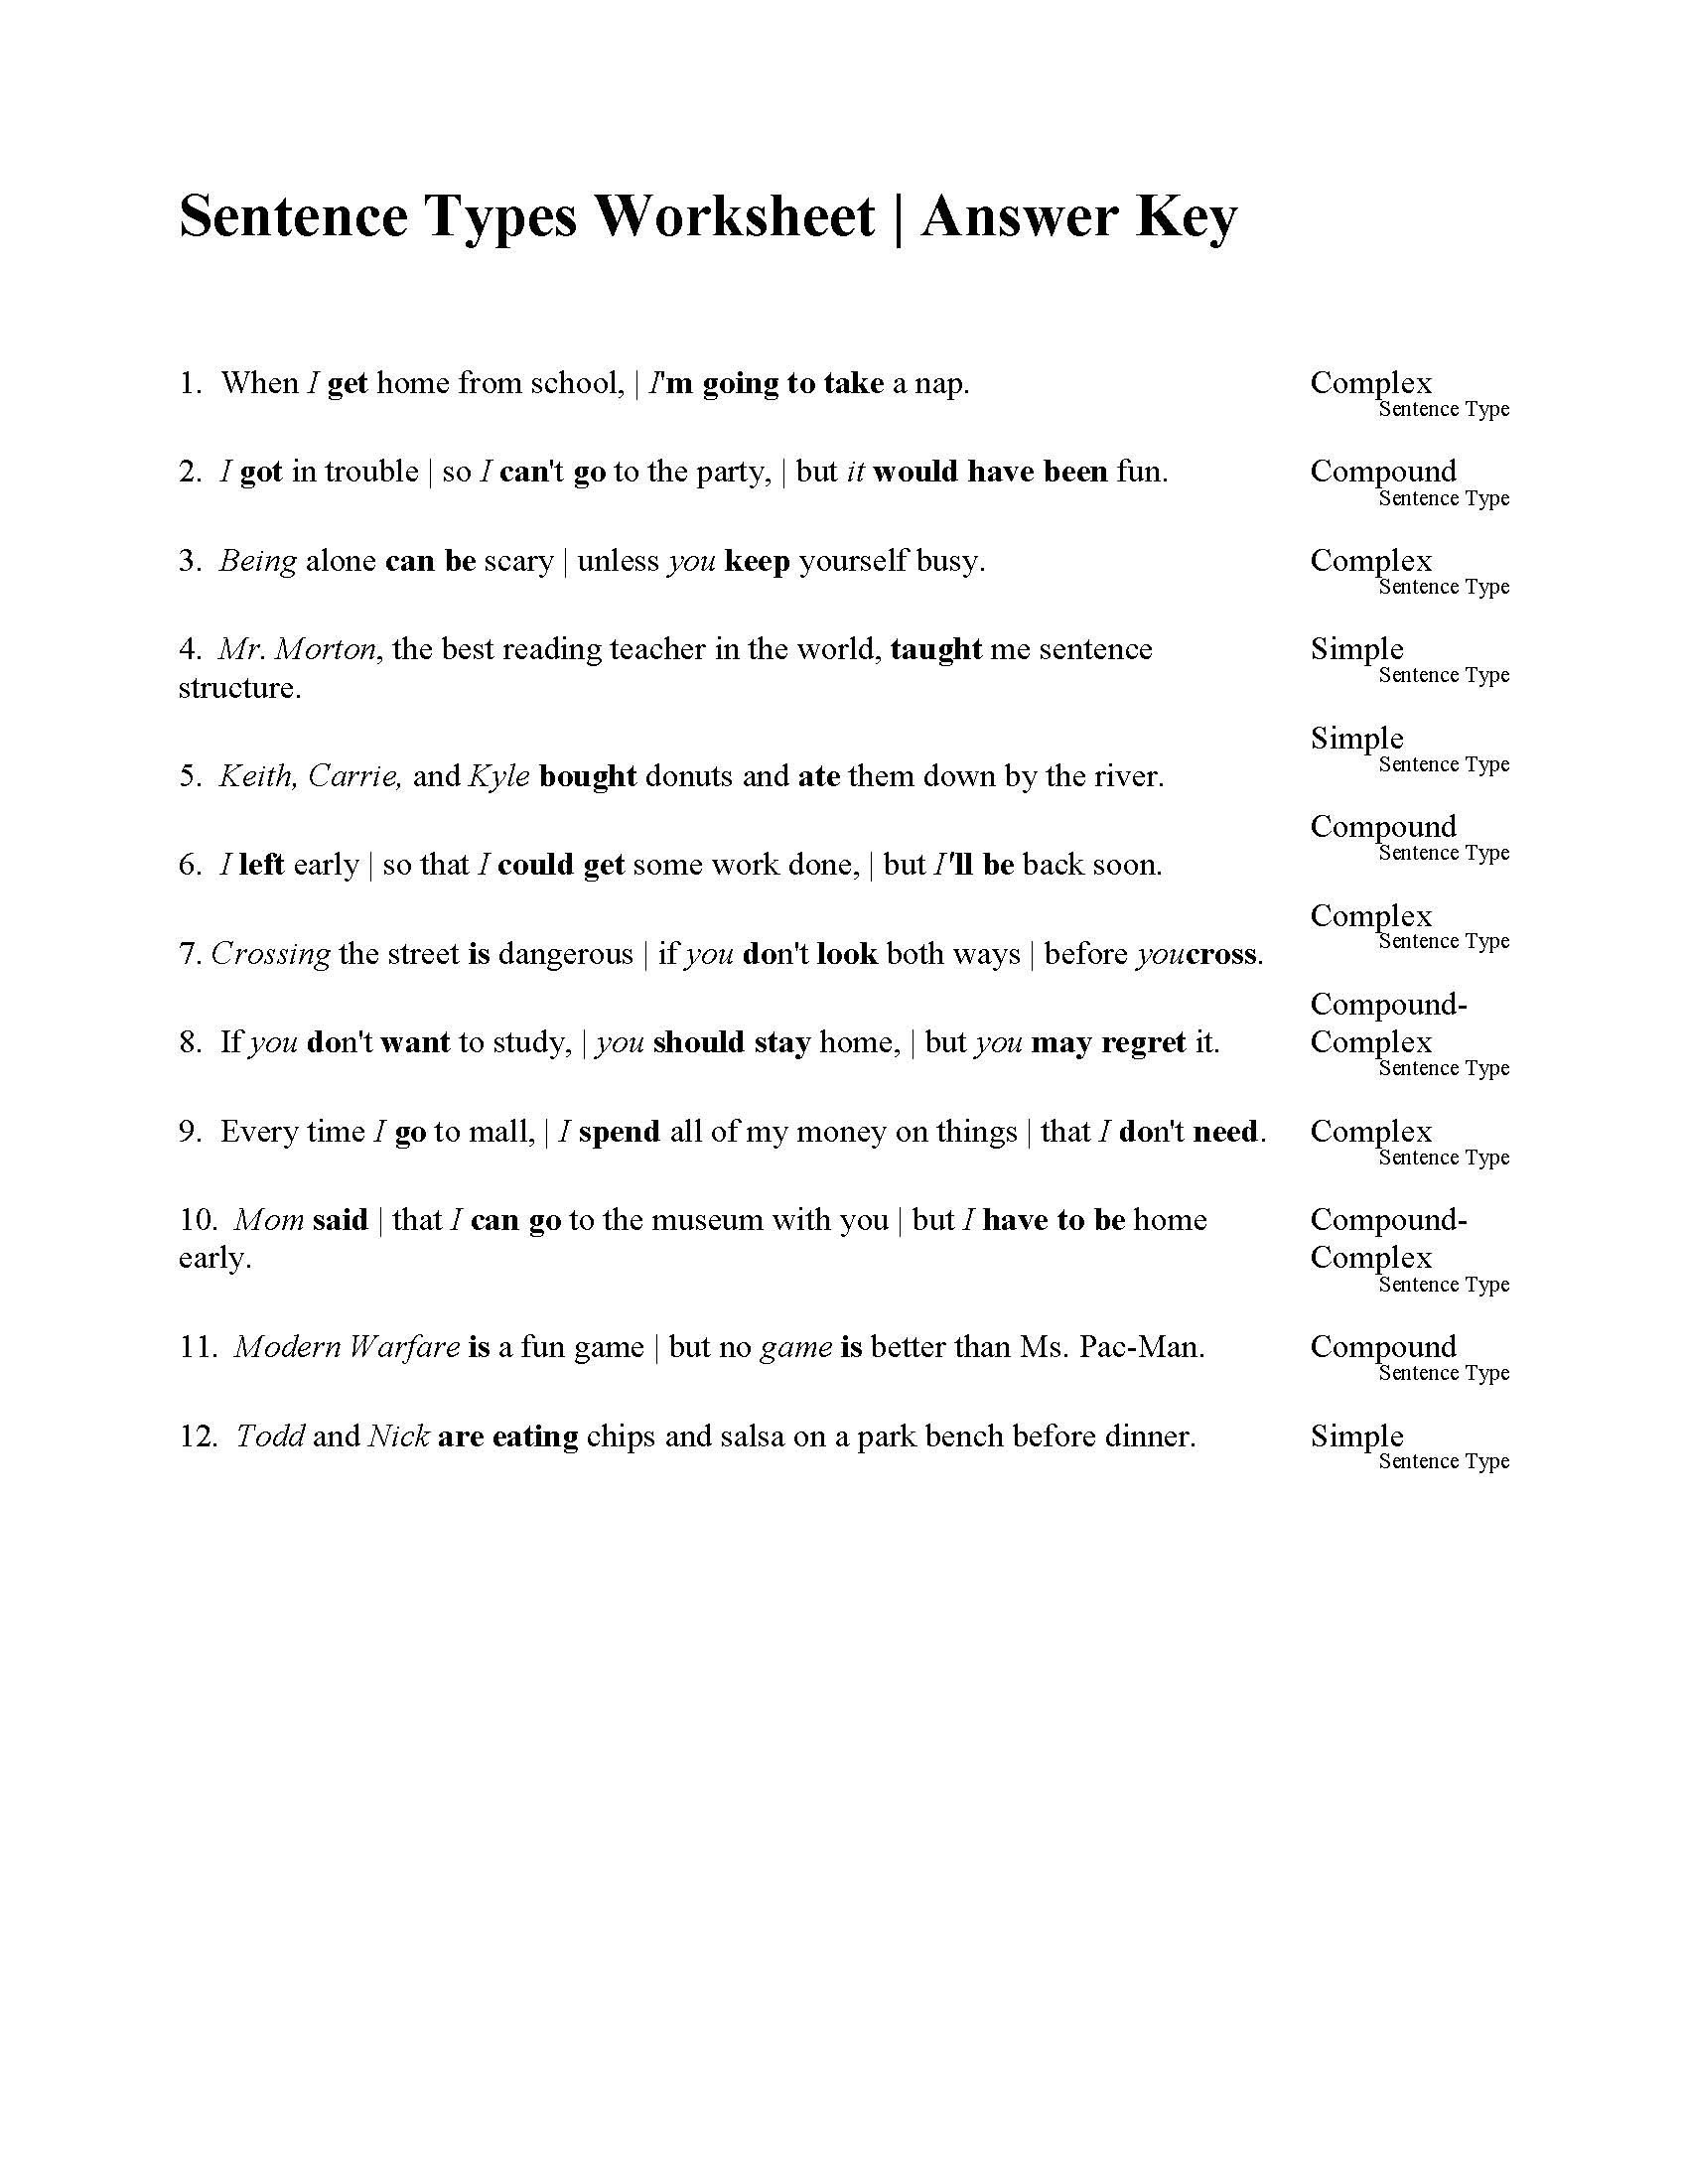 Complex Sentence Worksheets 4th Grade Math Numbers Spring Math Worksheets Free Sentence Exercises